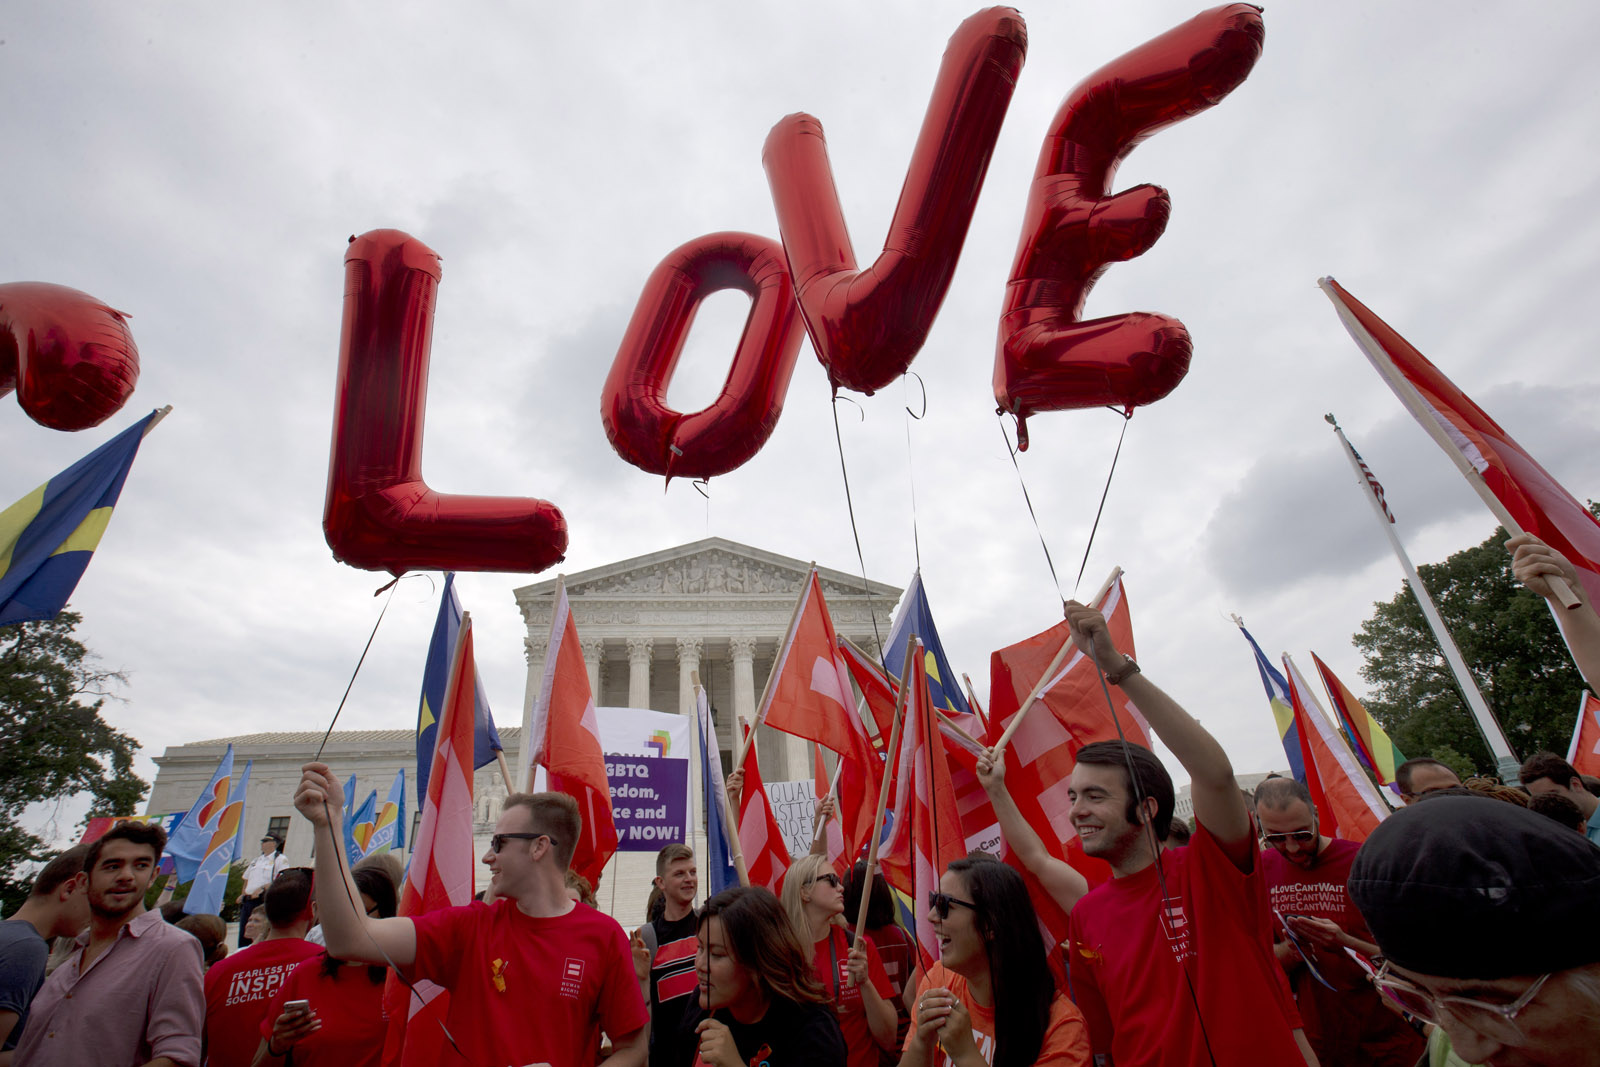 Photos: Supreme Court extends right to marry to all